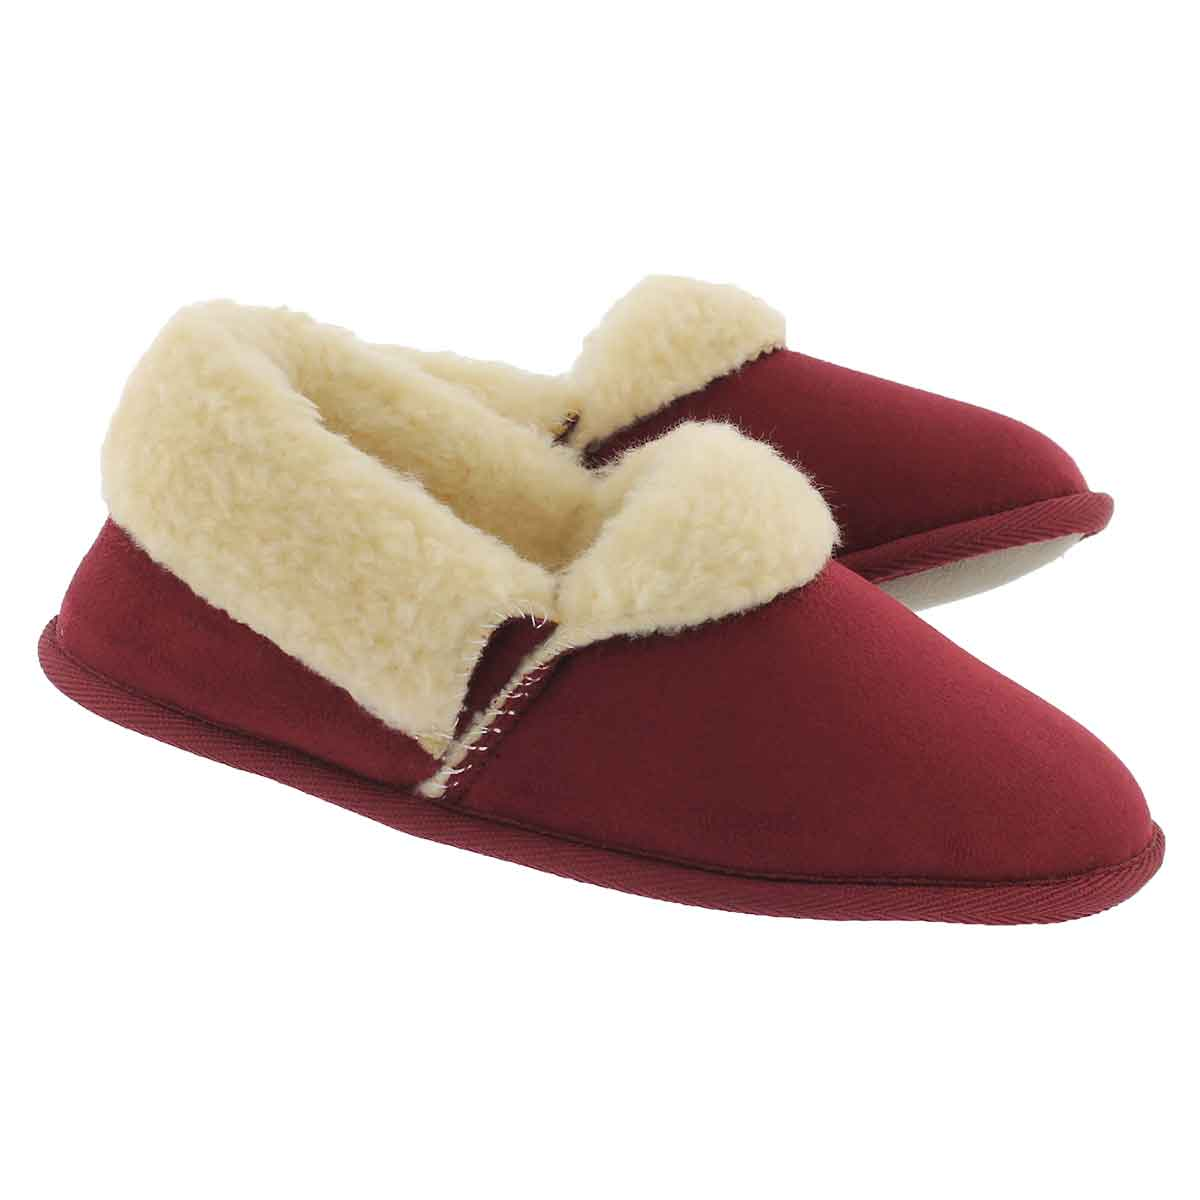 Lds Flapjack burg closed back slipper